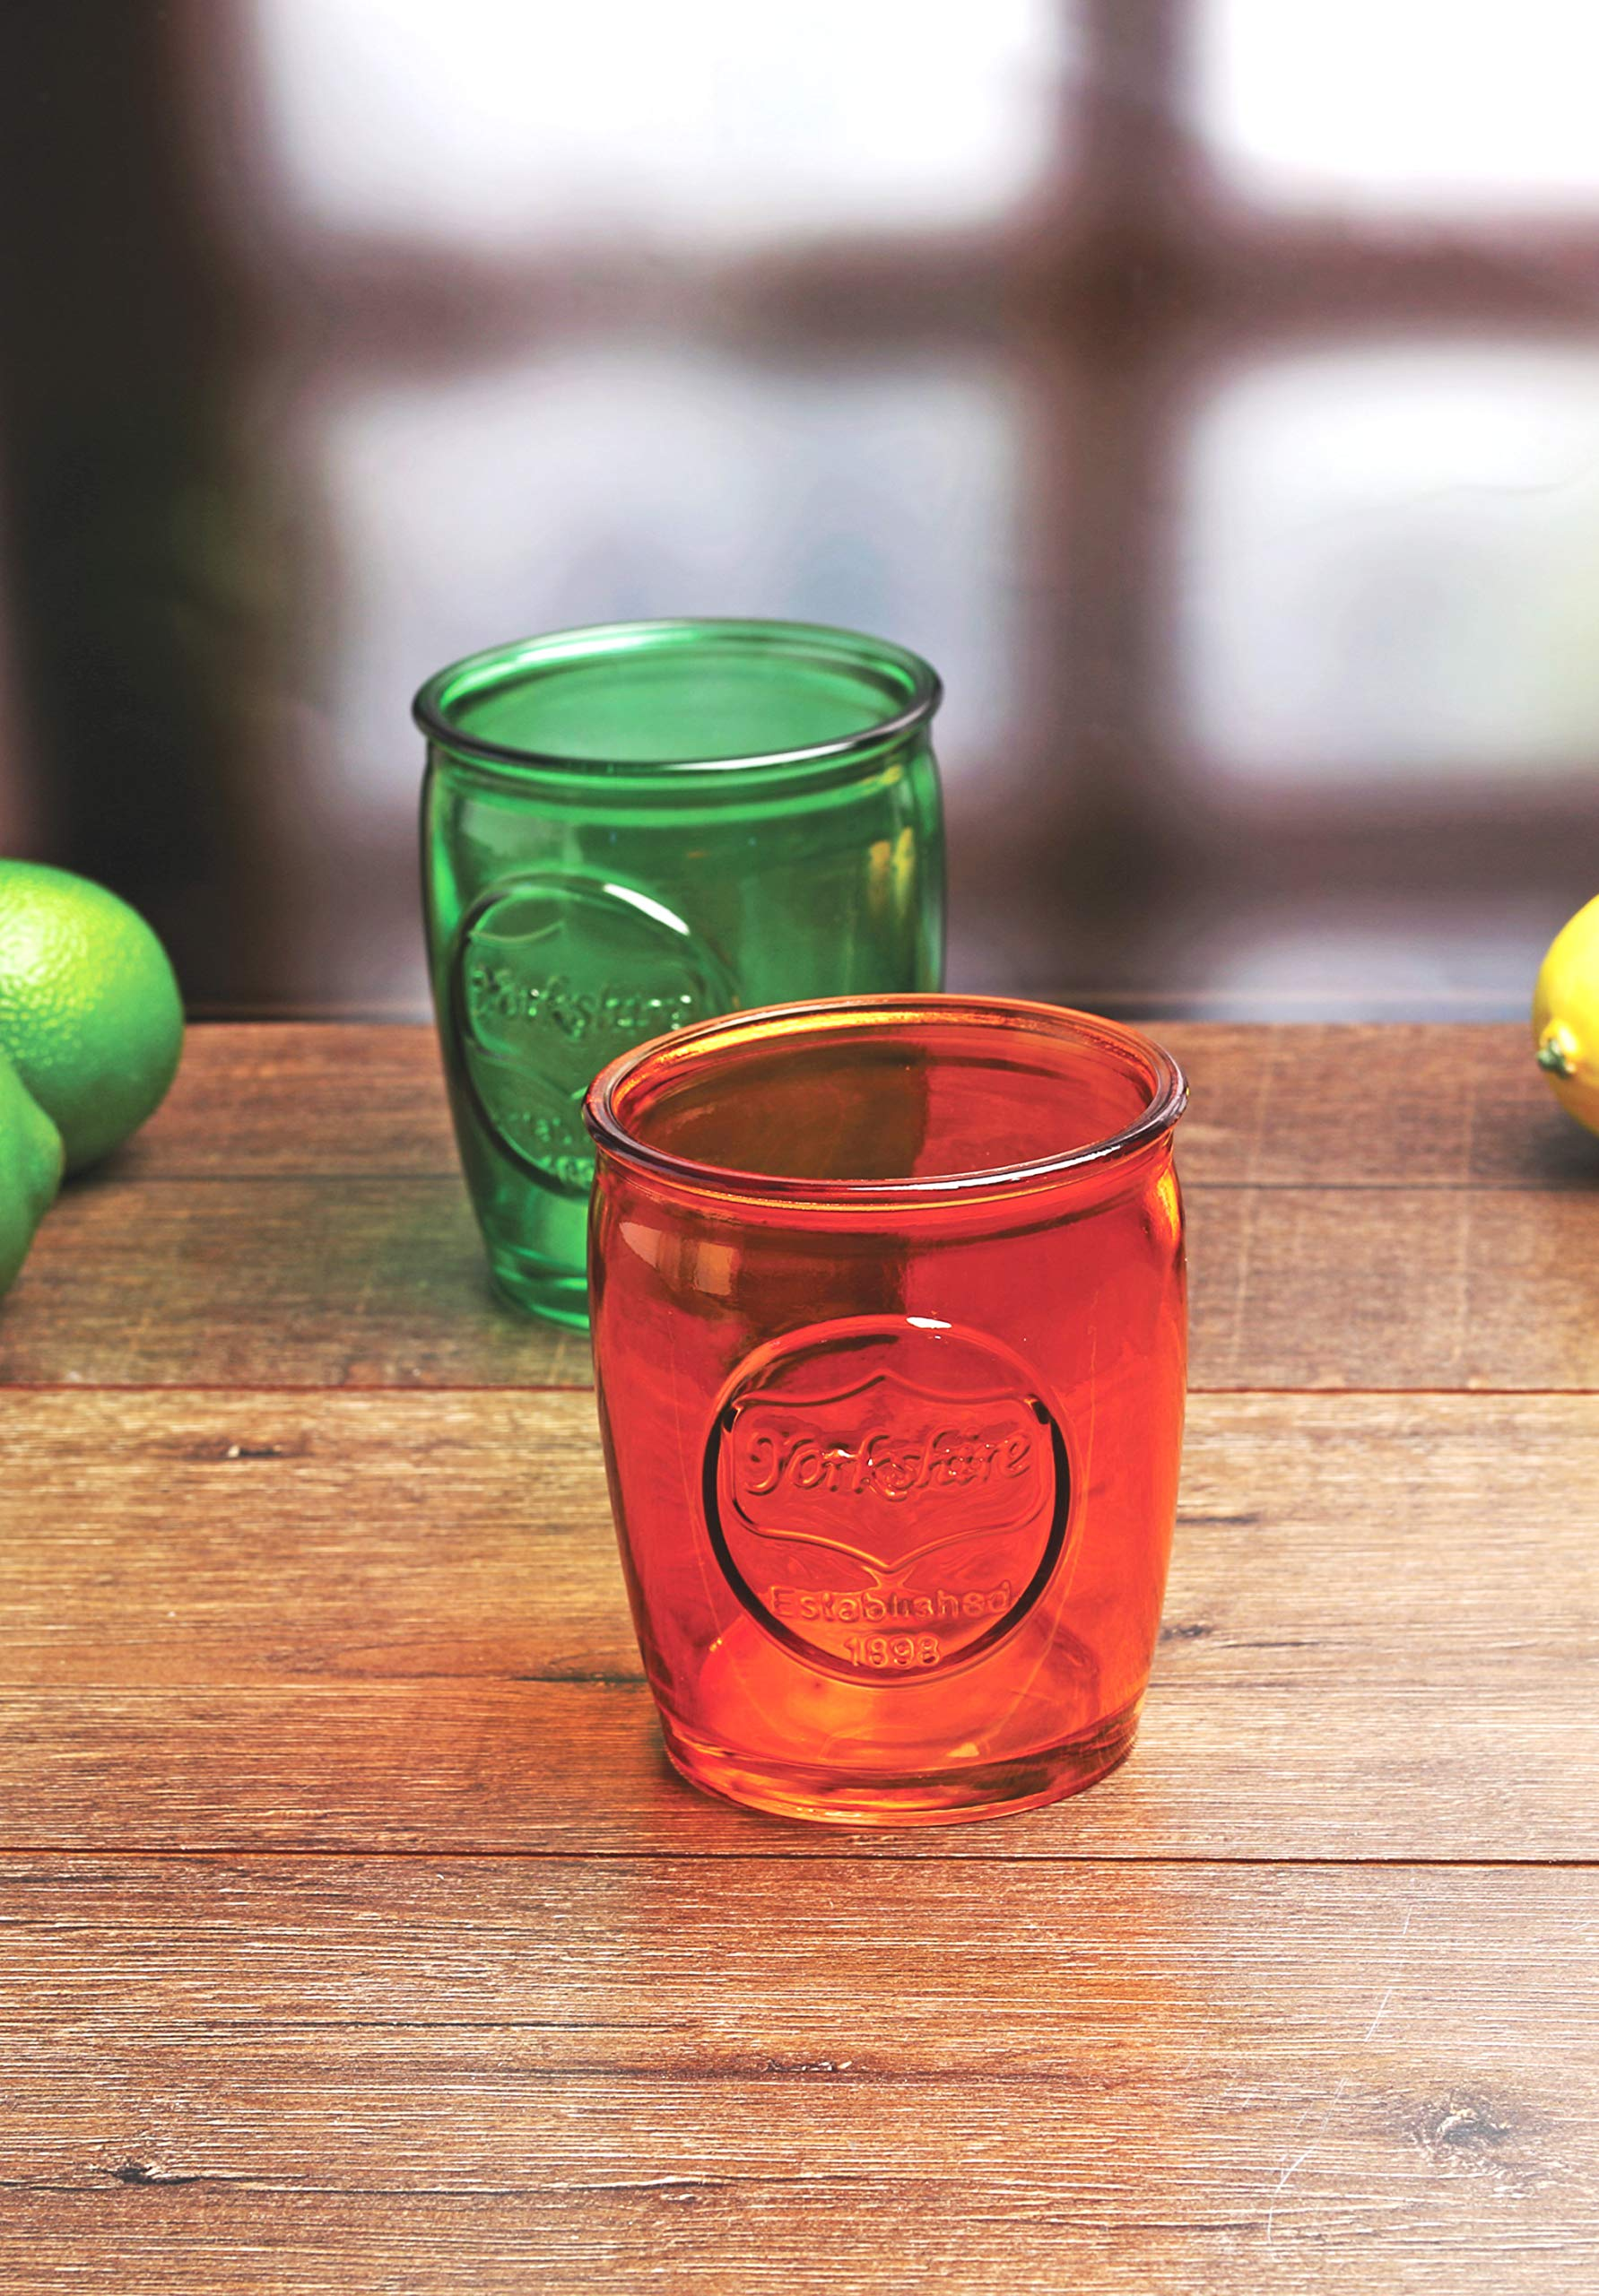 Circleware Yorkshire Heavy Base Whiskey Glasses 4-Piece, Party Entertainment Dining Beverage Drinking Glassware Cups for Water, Liquor, Beer, Ice Tea, Juice and Farmhouse Decor, 13 oz